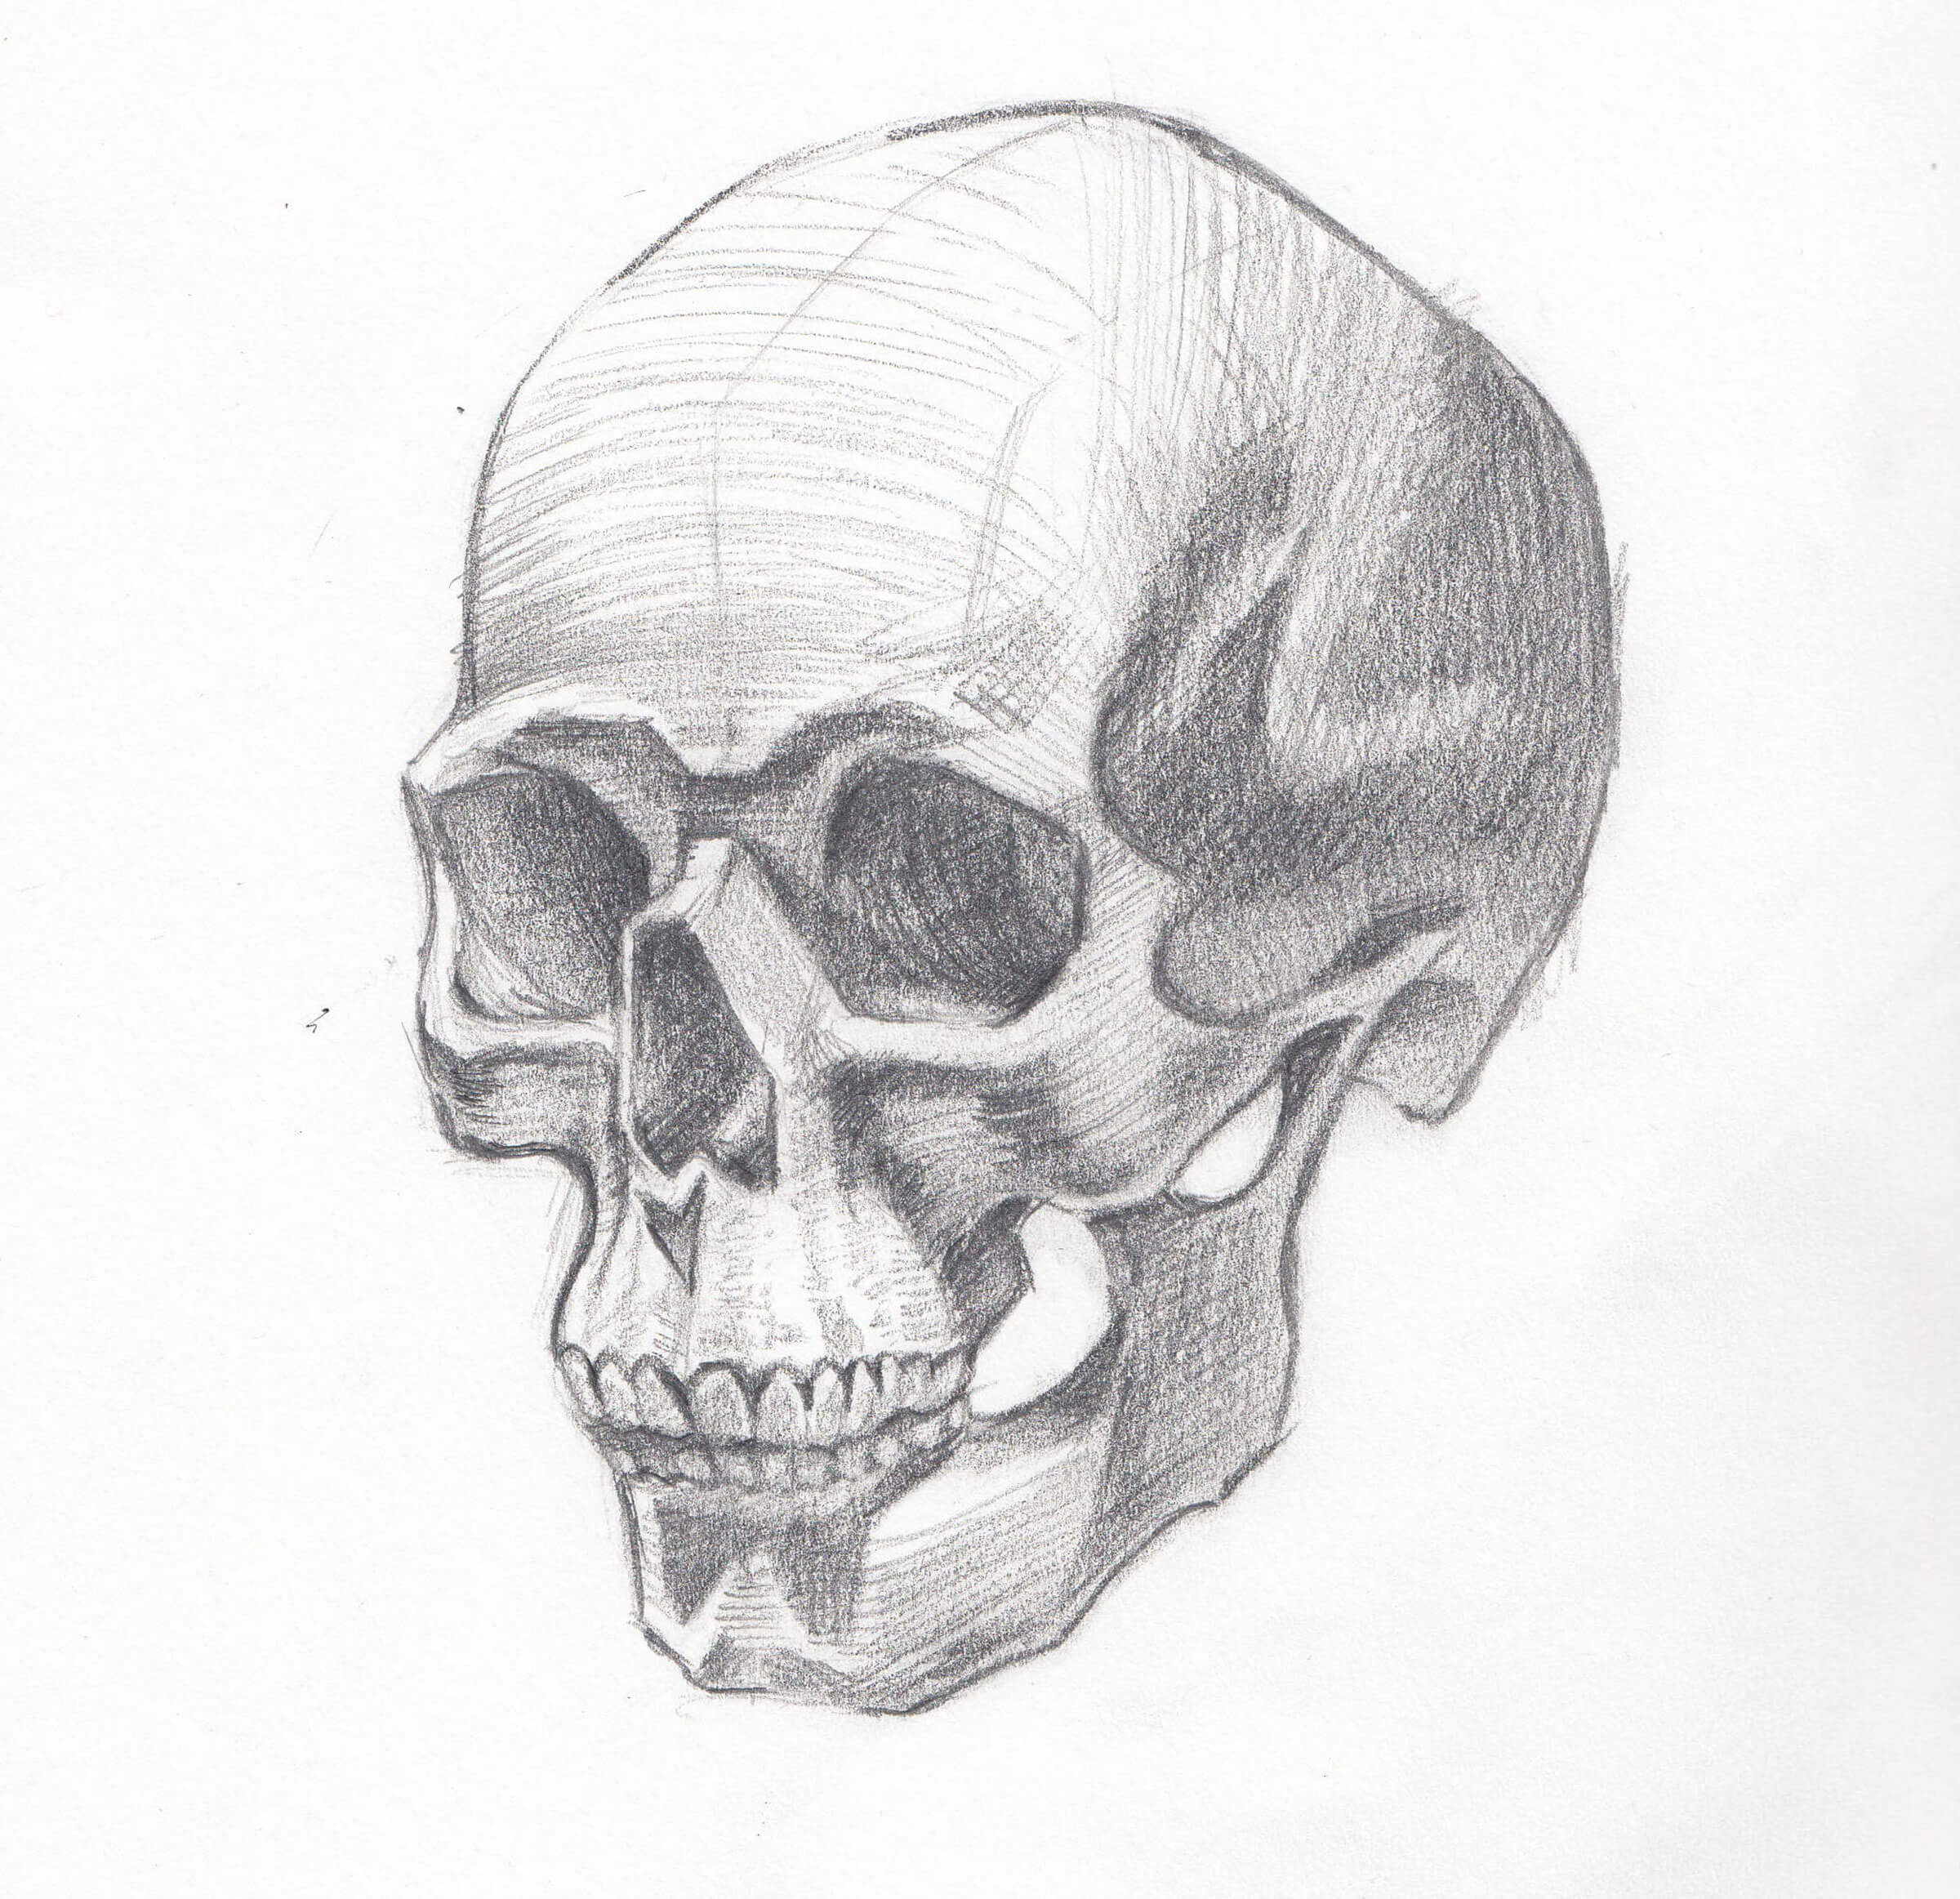 A black-and-white sketch of an unadorned human skull.